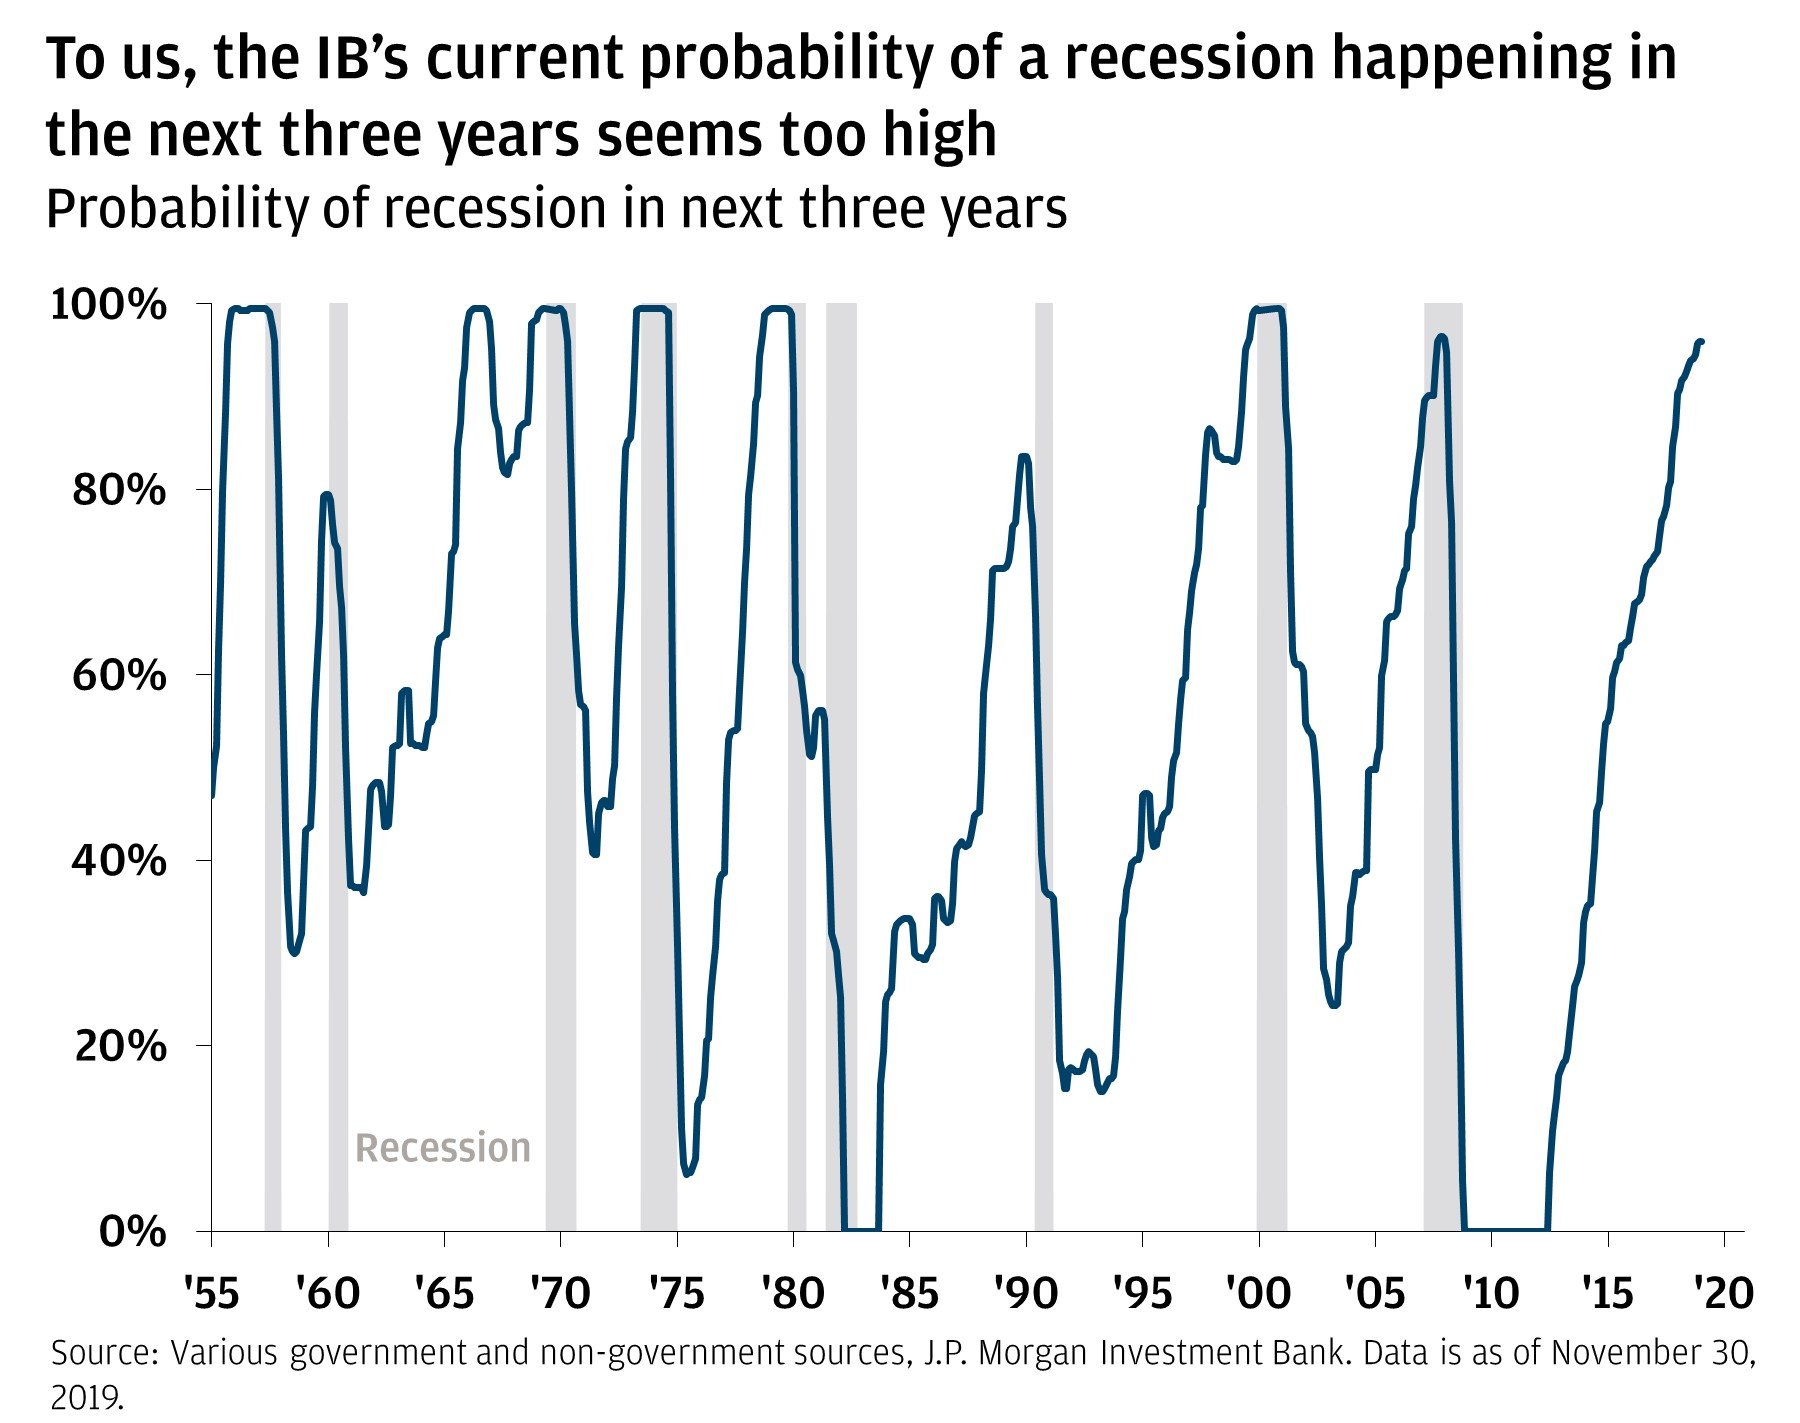 To us, the IB's current probability of a recession happening in the next three years seems too high